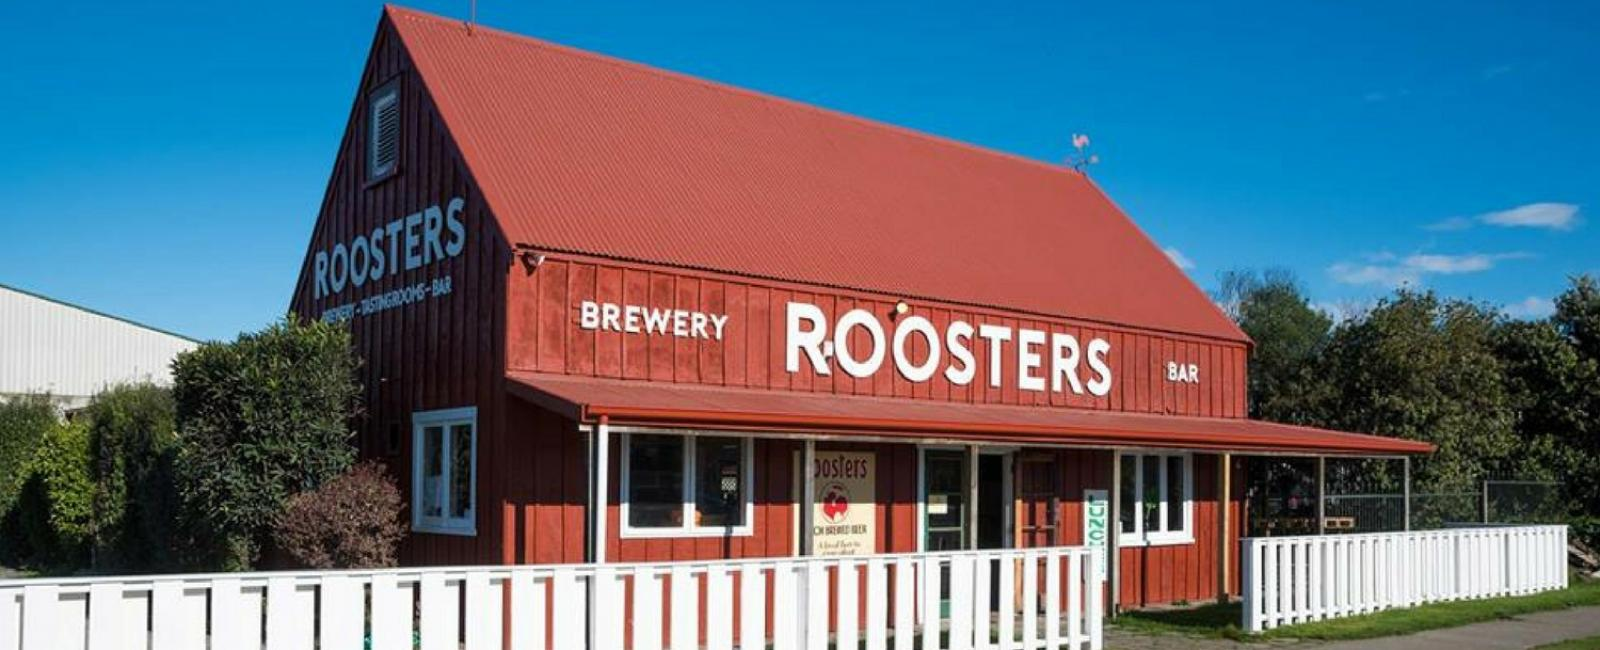 Roosters Craft Brewery